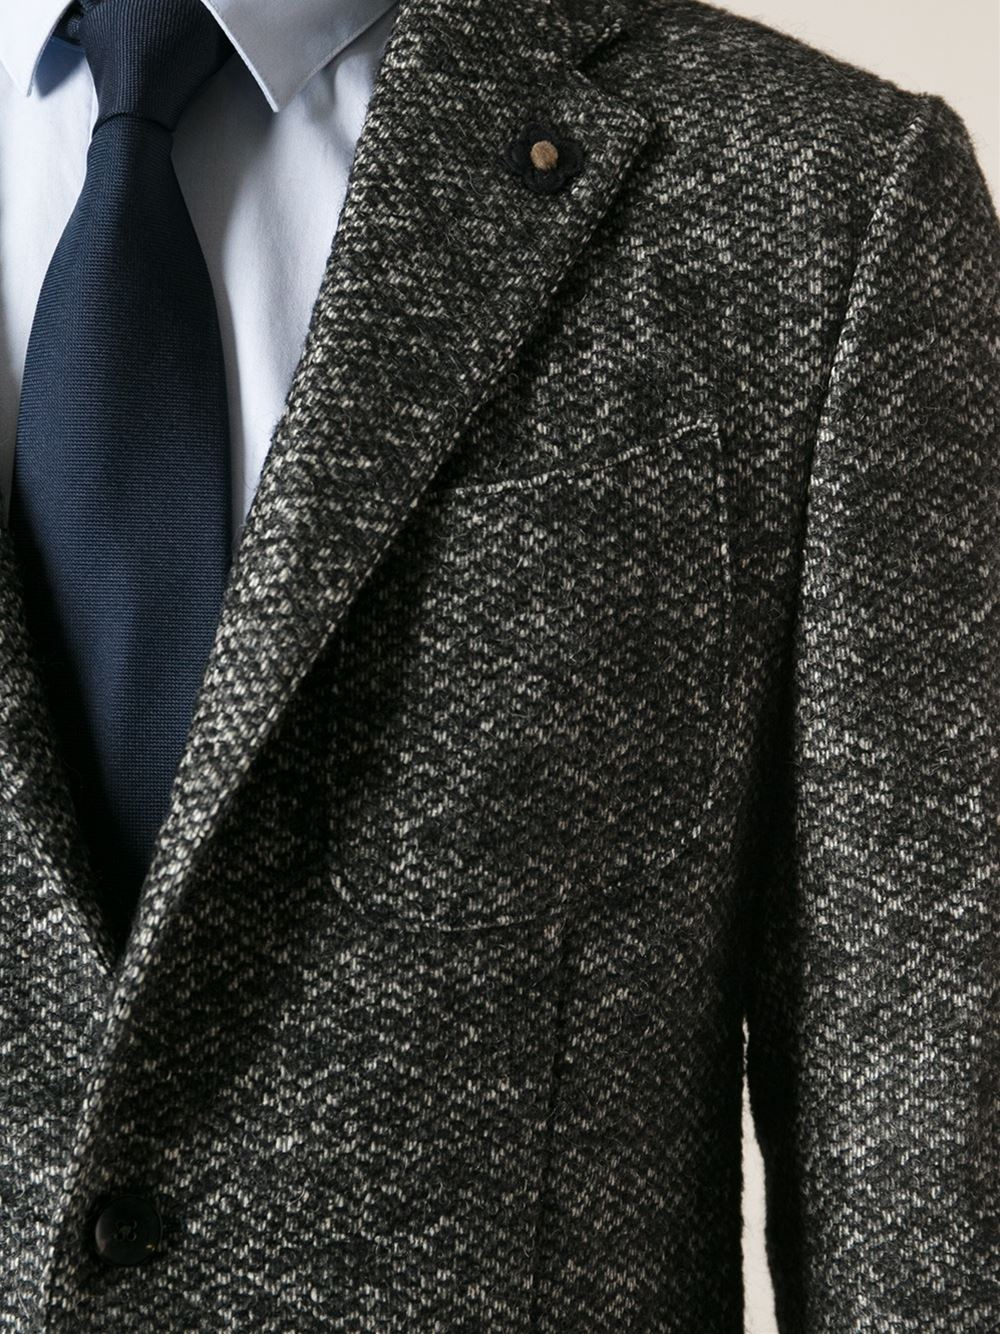 A good blazer will take you from work right through to the weekend.5 Star Service · 5 Star Ratings · Unbeatable Prices · $99 Orders Ship Free.